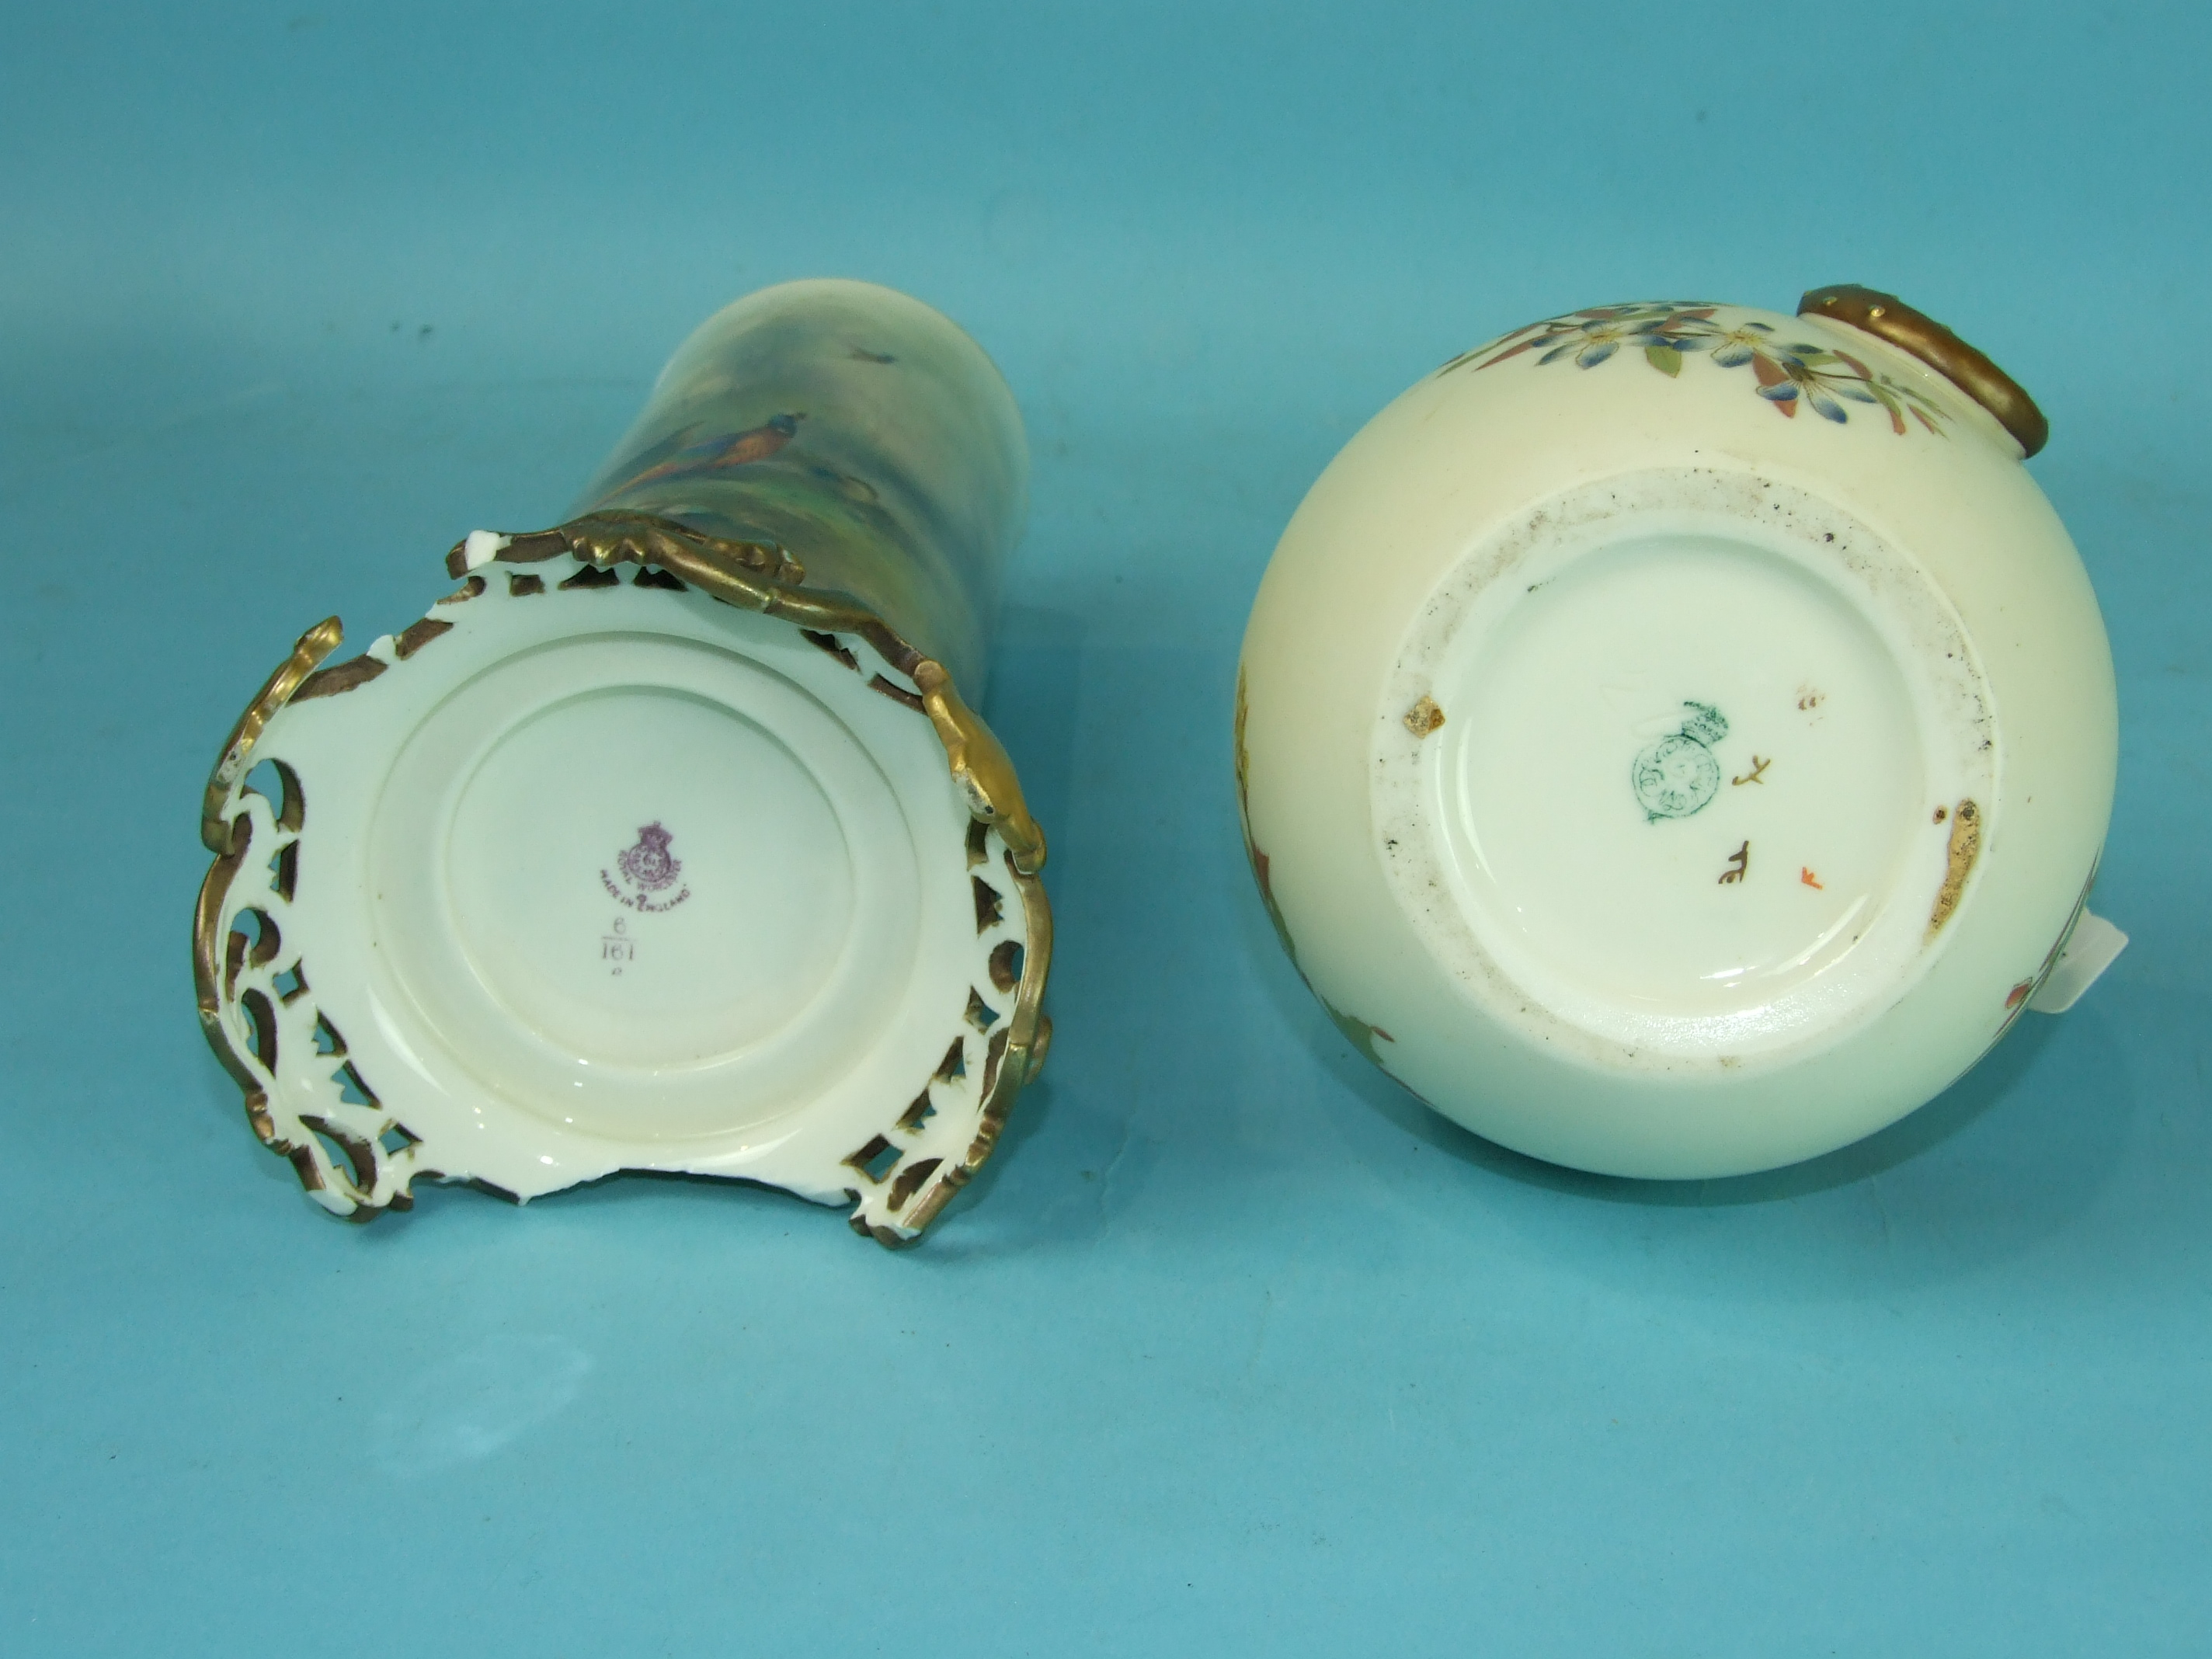 Lot 401 - A Royal Worcester blush ivory dragon-handled ewer and a Royal Worcester large vase decorated with